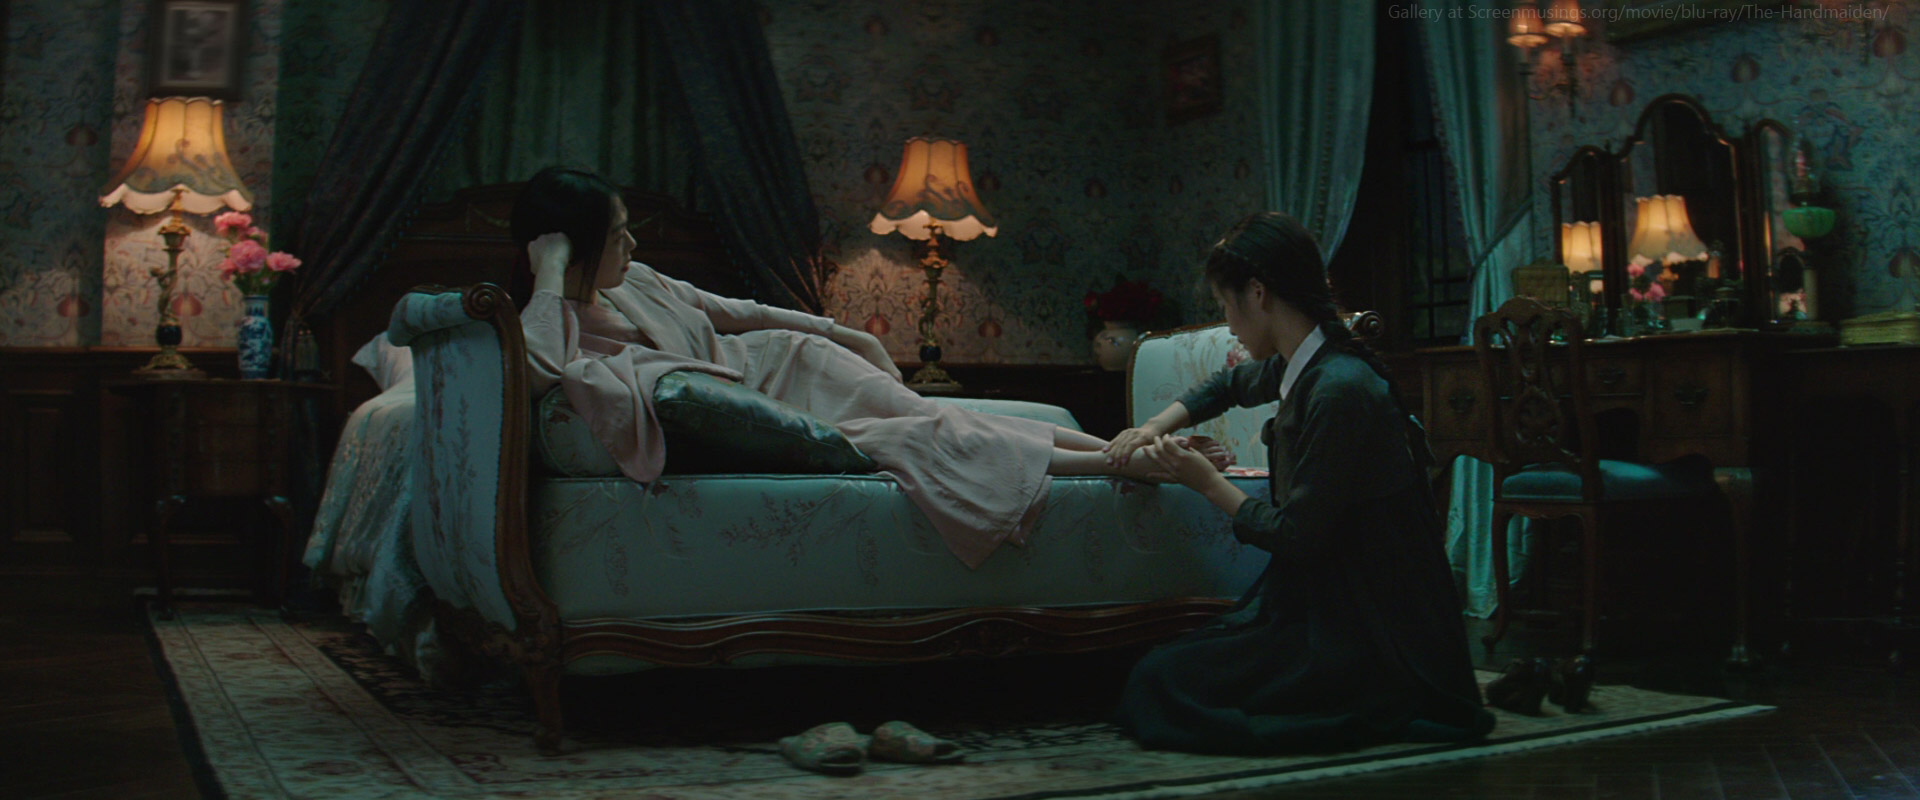 Image result for the handmaiden screencaps